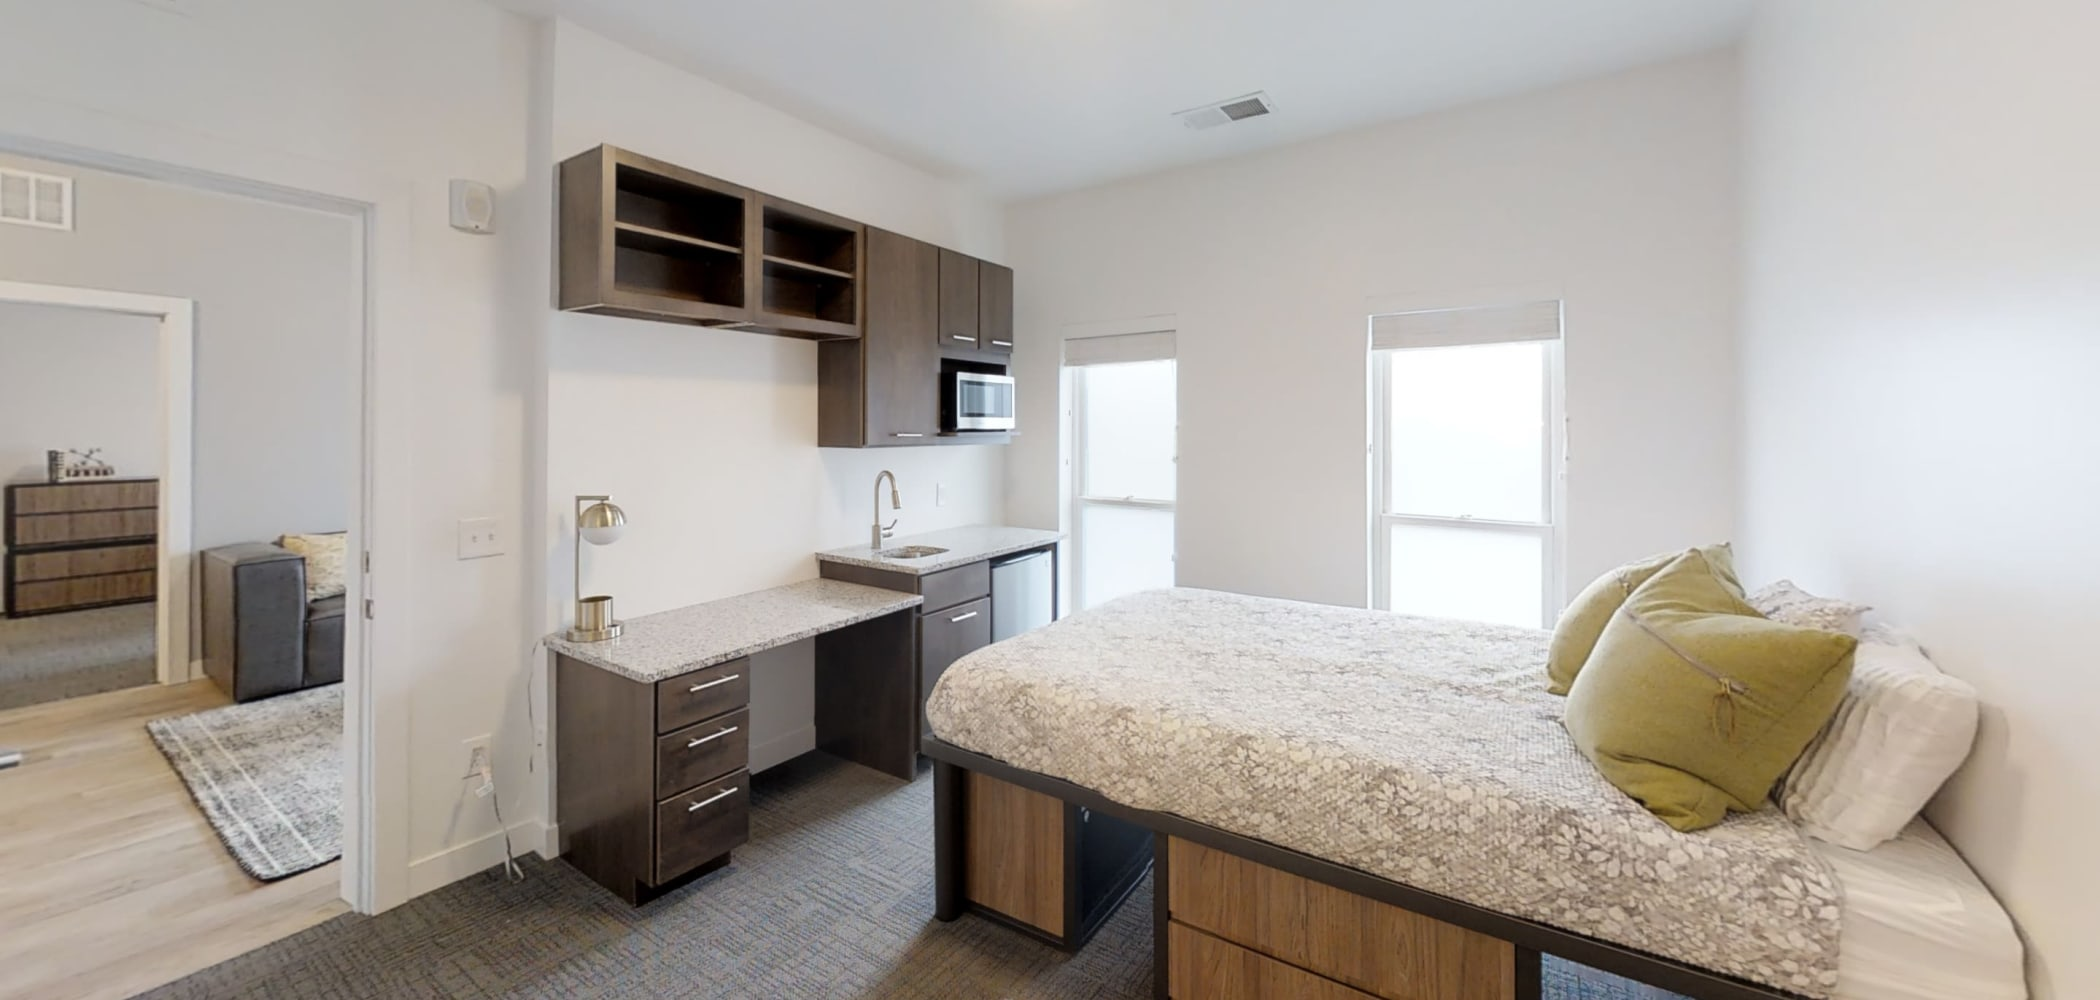 Furnished bedroom with small kitchen area at The View on Pavey Square in Columbus, Ohio